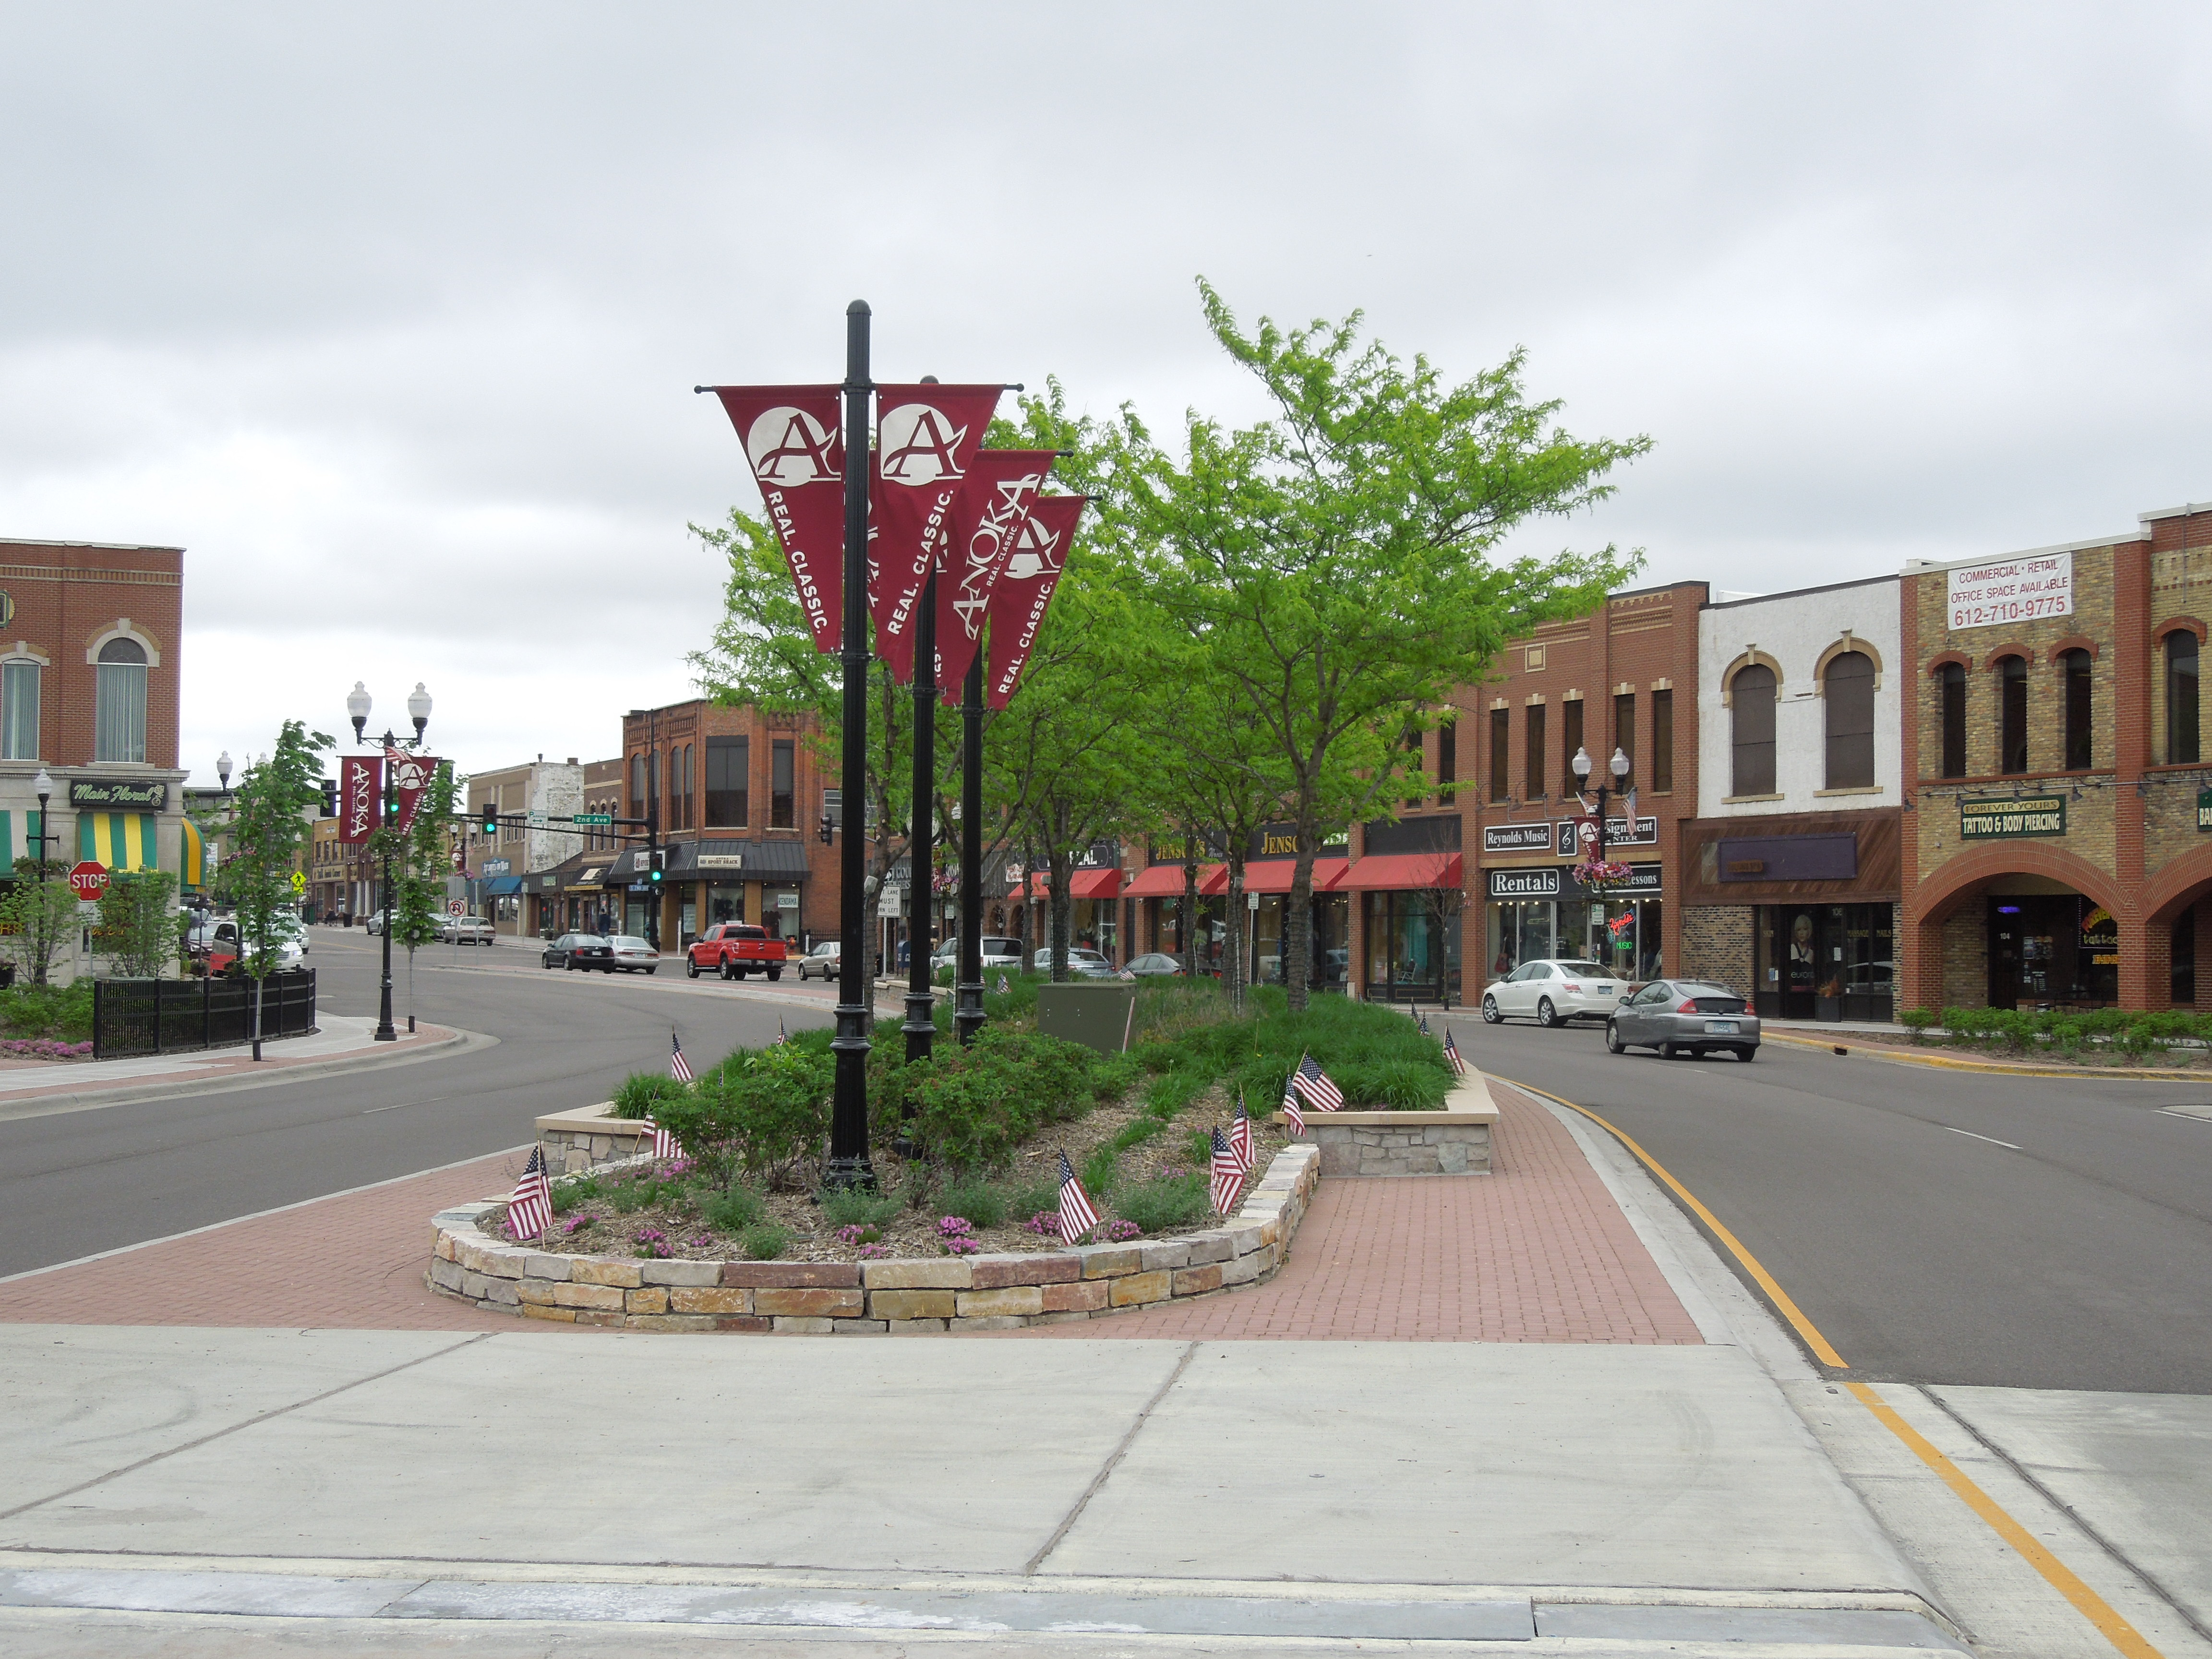 Downtown-Anoka-Minnesota.jpg